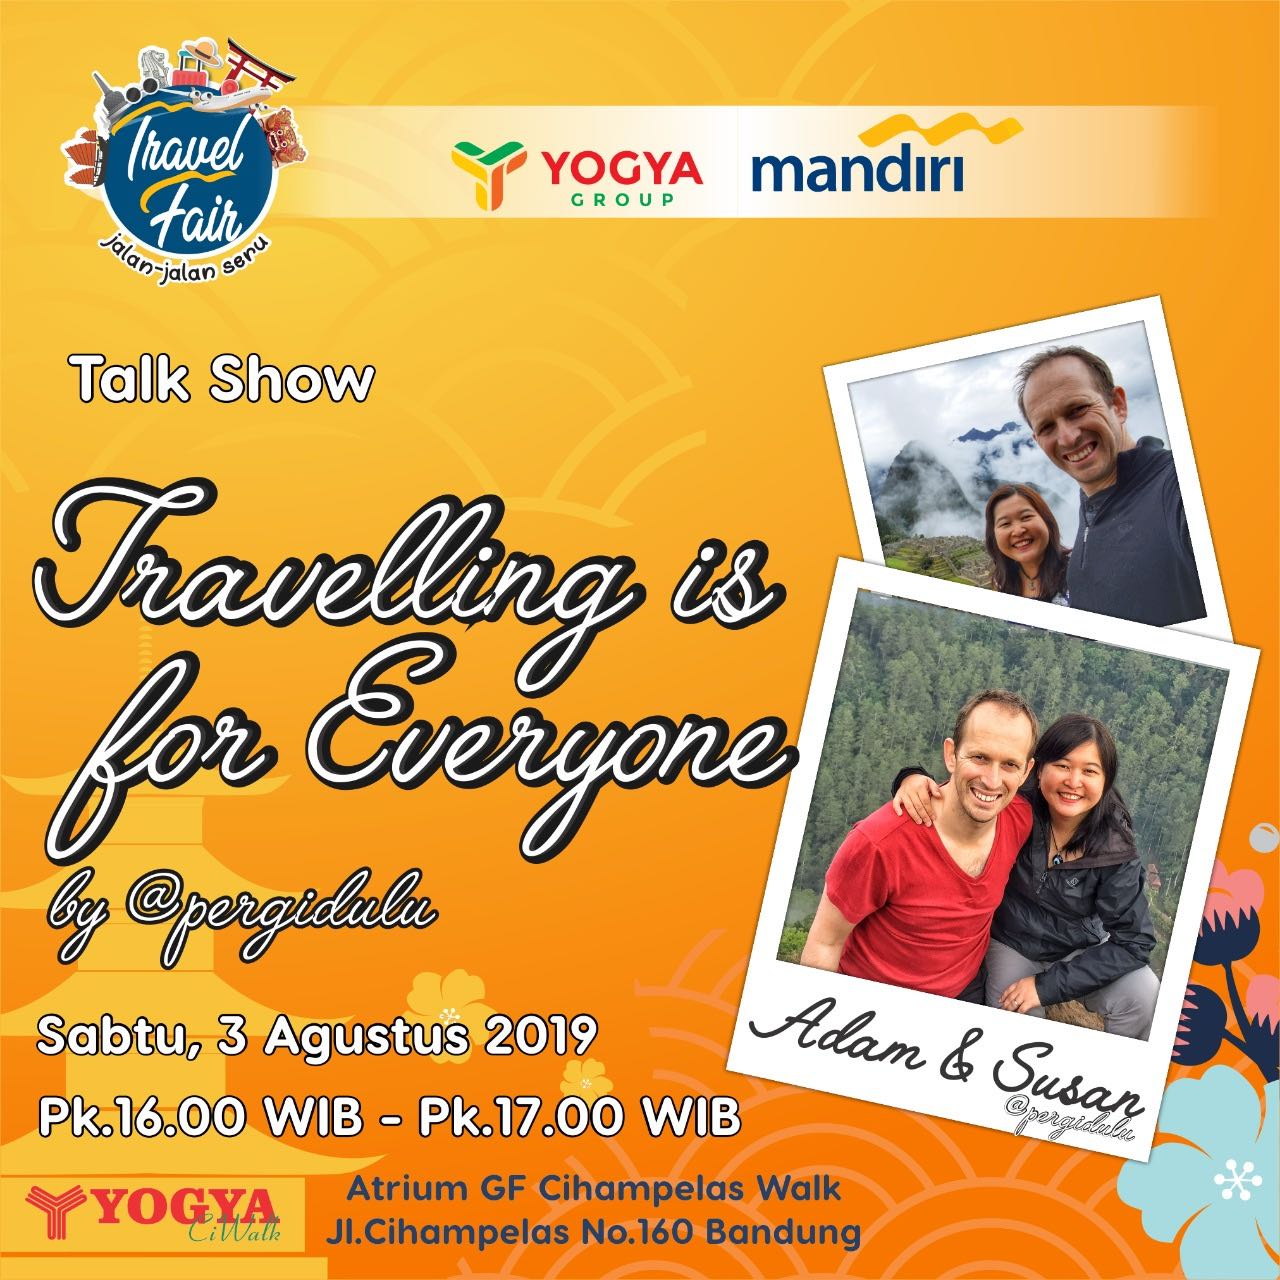 Yogya Travel Fair 2019